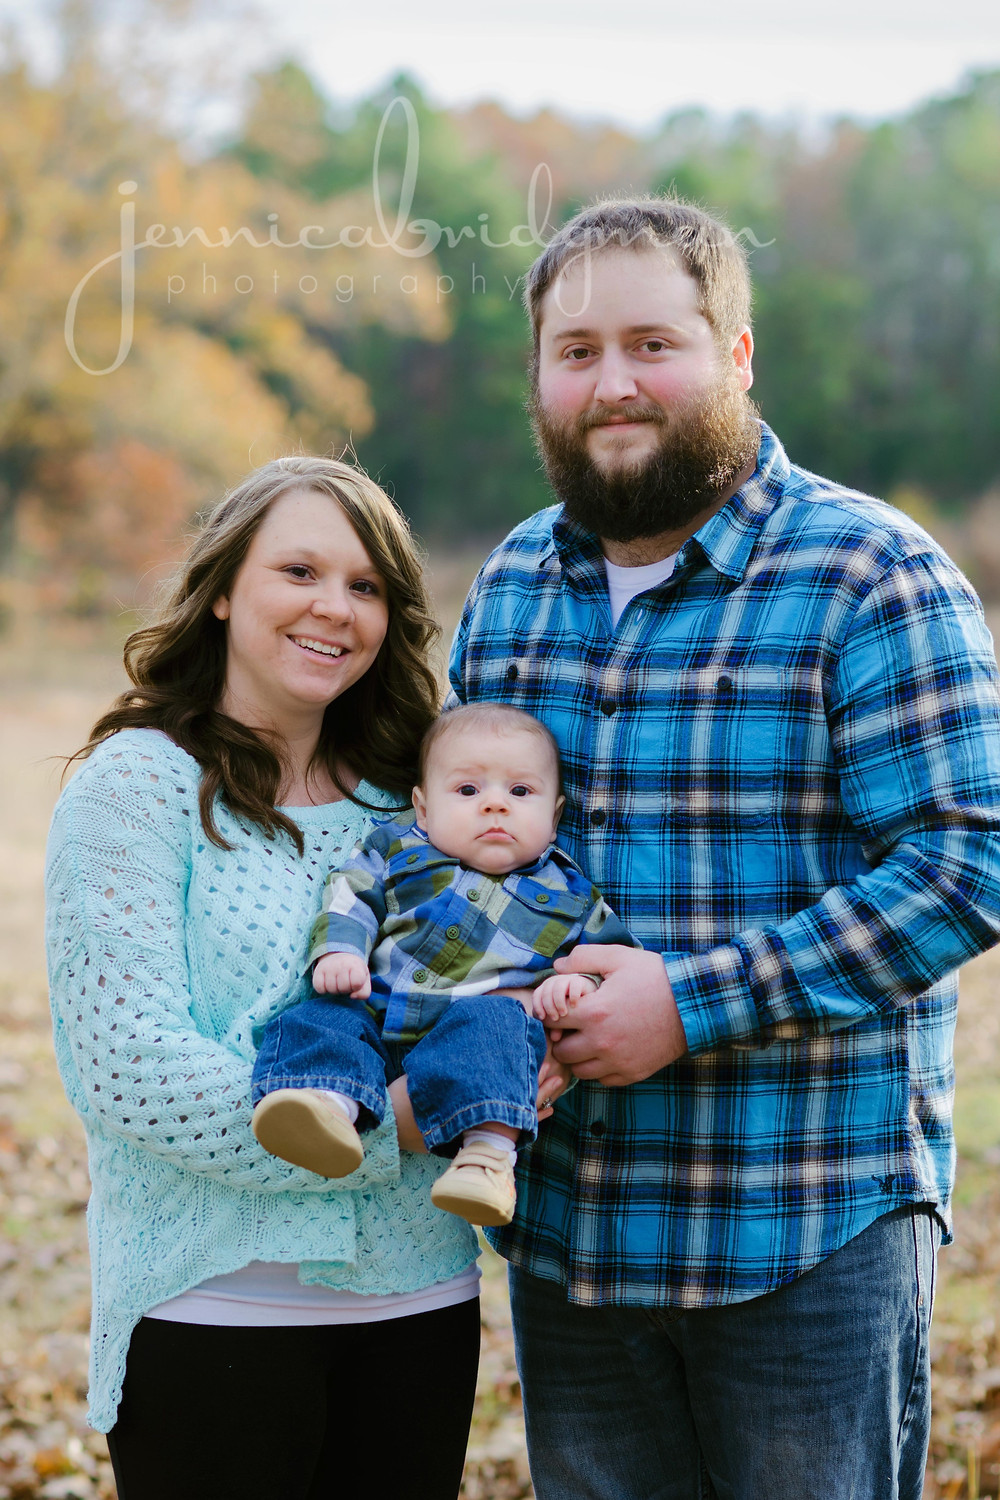 Williams Family   Fall Family Photo Session   Conway, AR Family Photographer